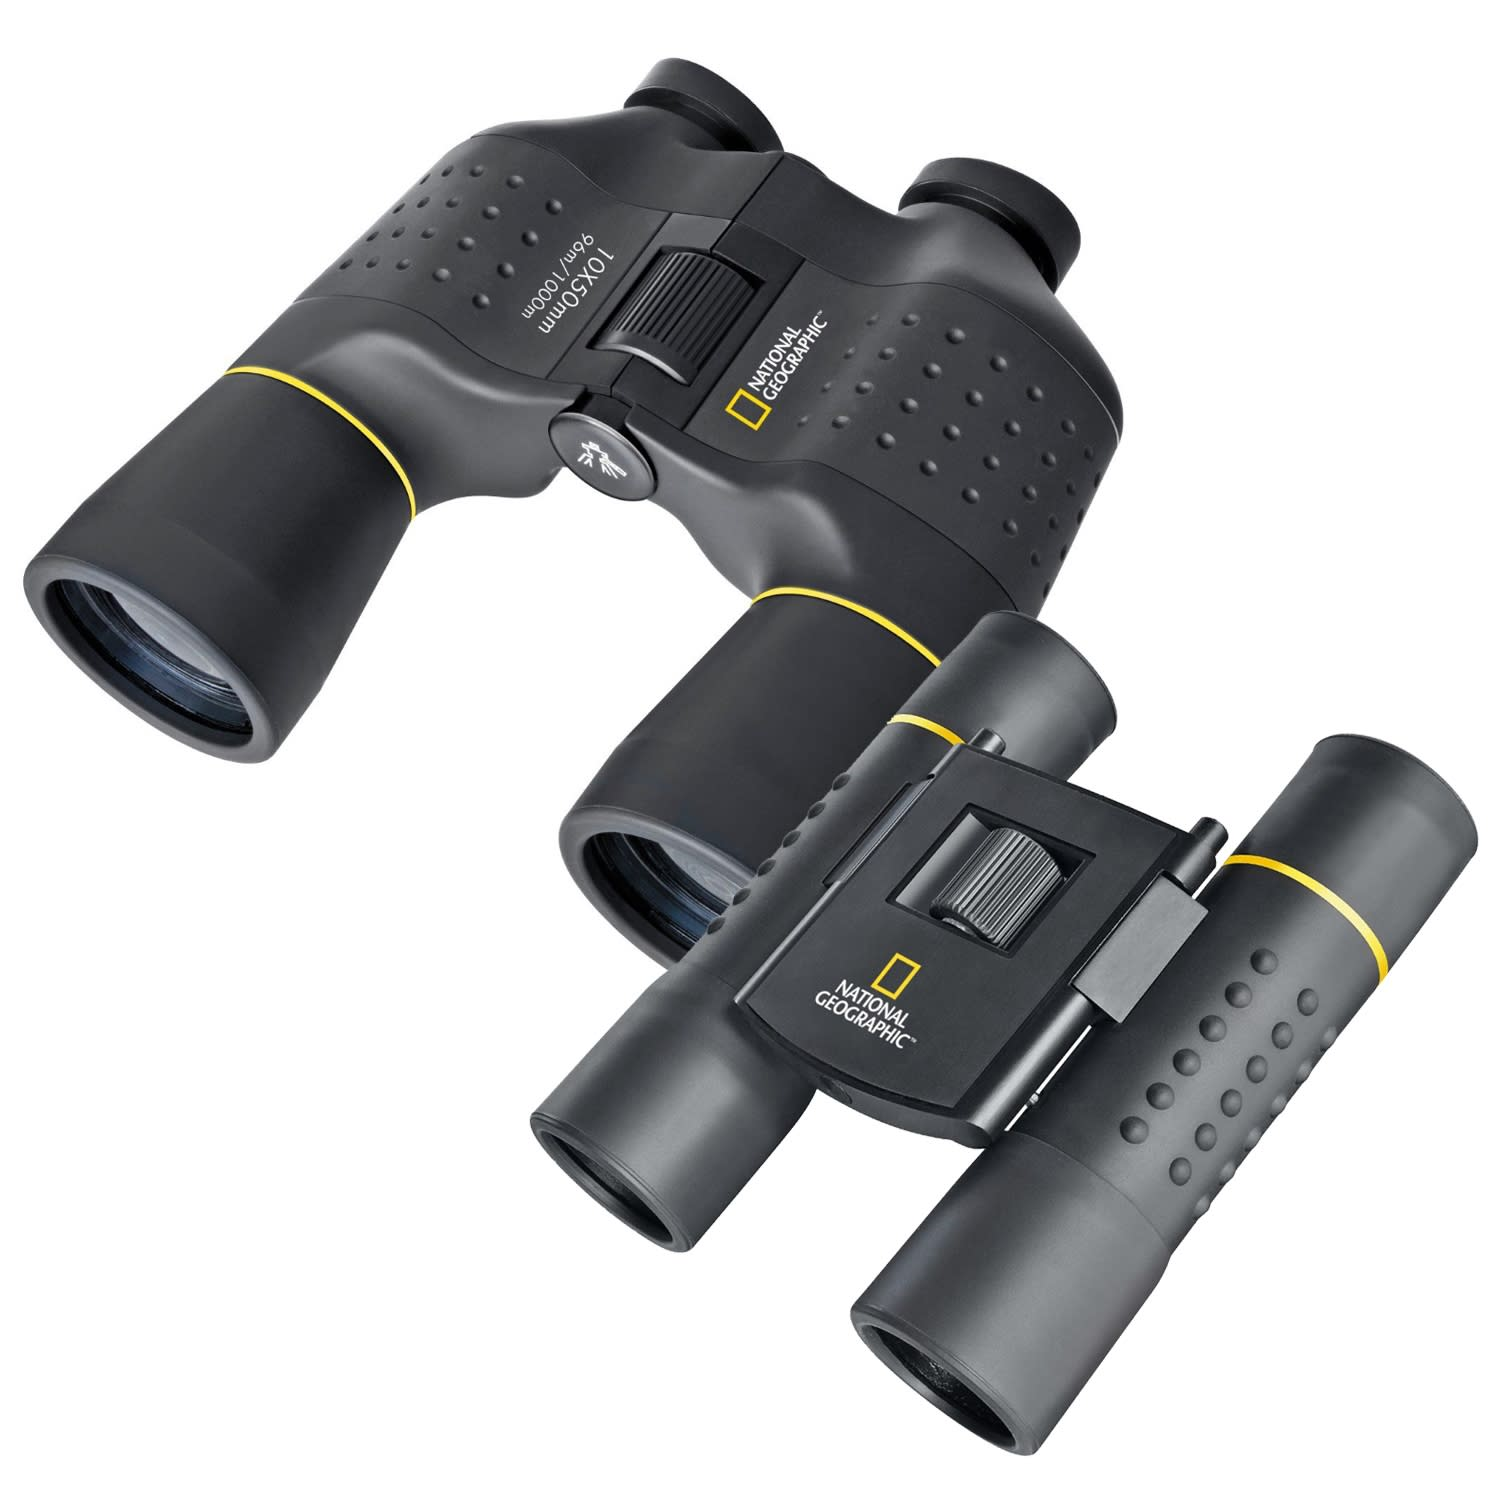 National Geographic Binocular Set